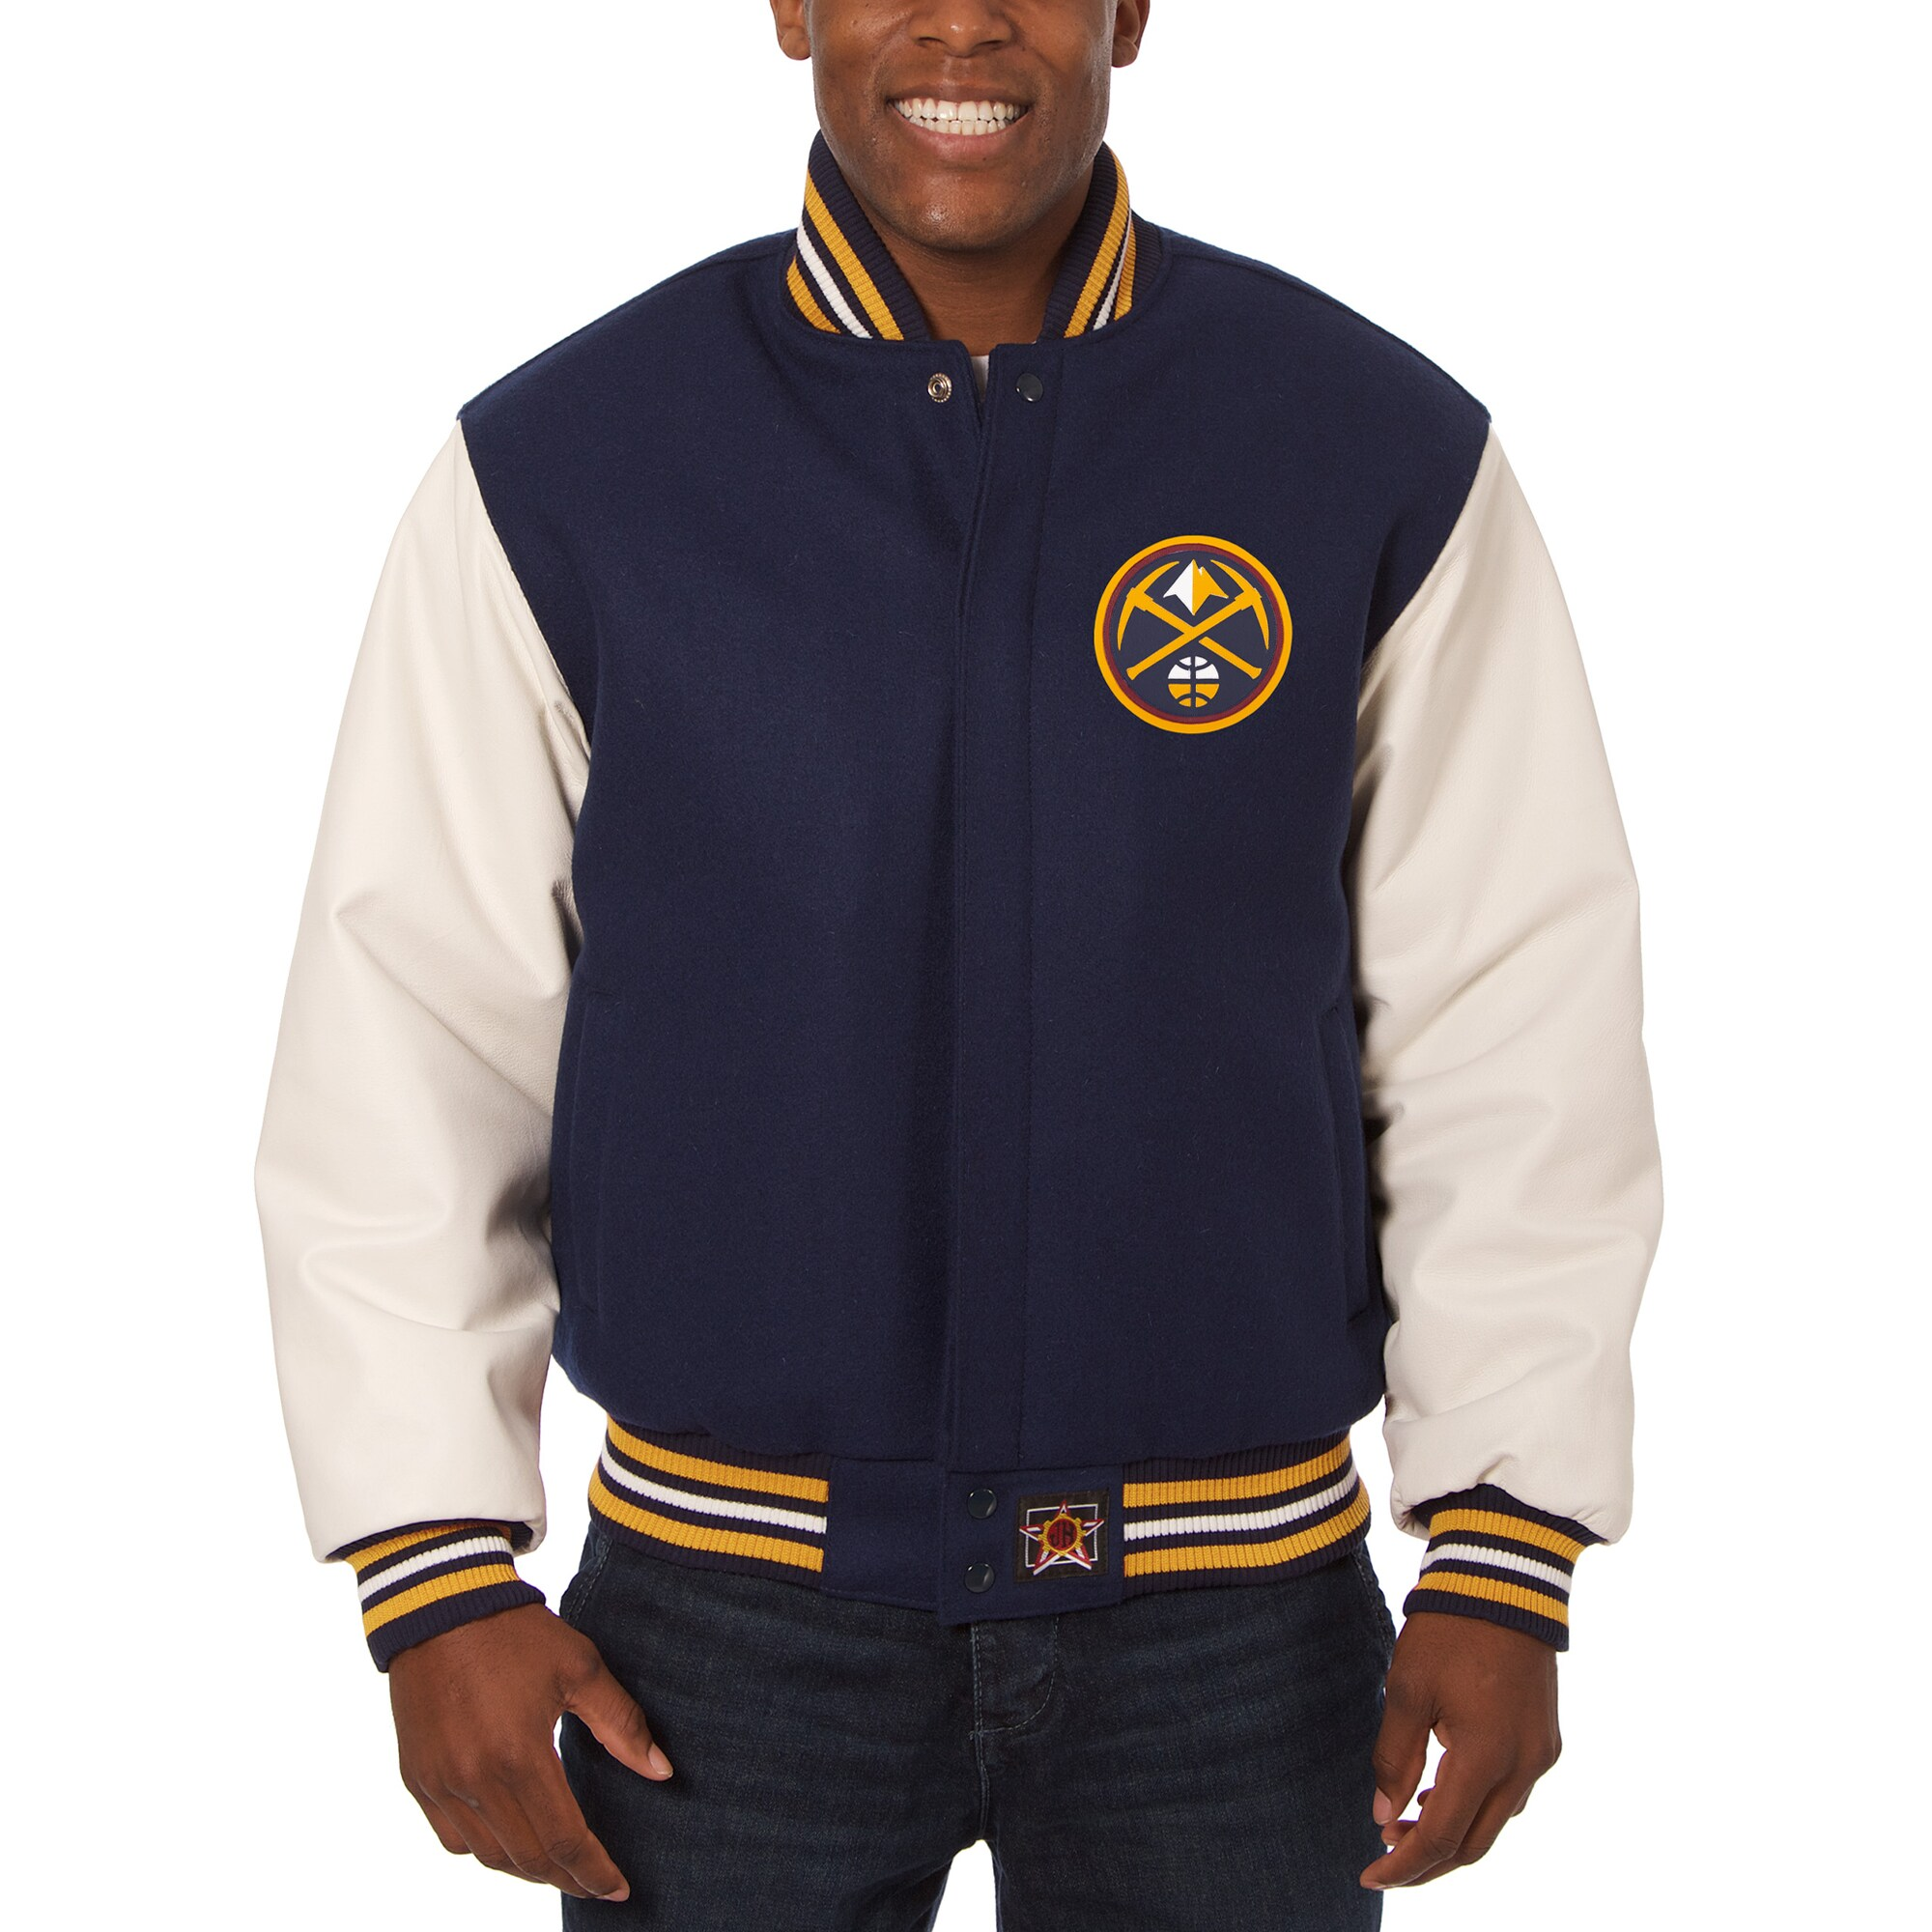 Denver Nuggets JH Design Big & Tall Wool & Leather Full-Snap Jacket - Navy/White